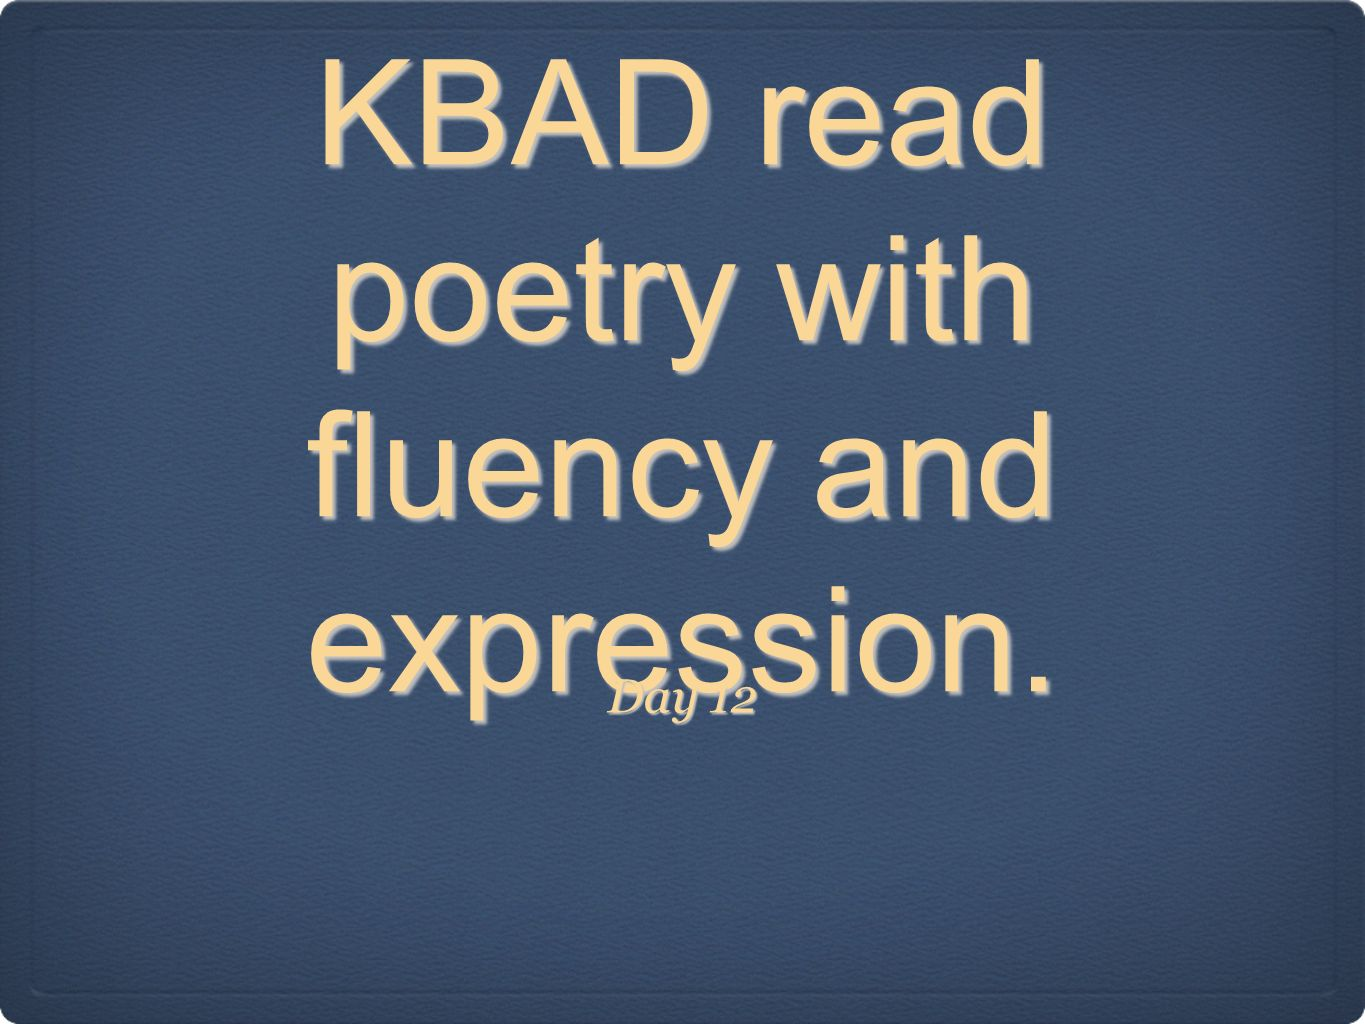 KBAD read poetry with fluency and expression. Day 12